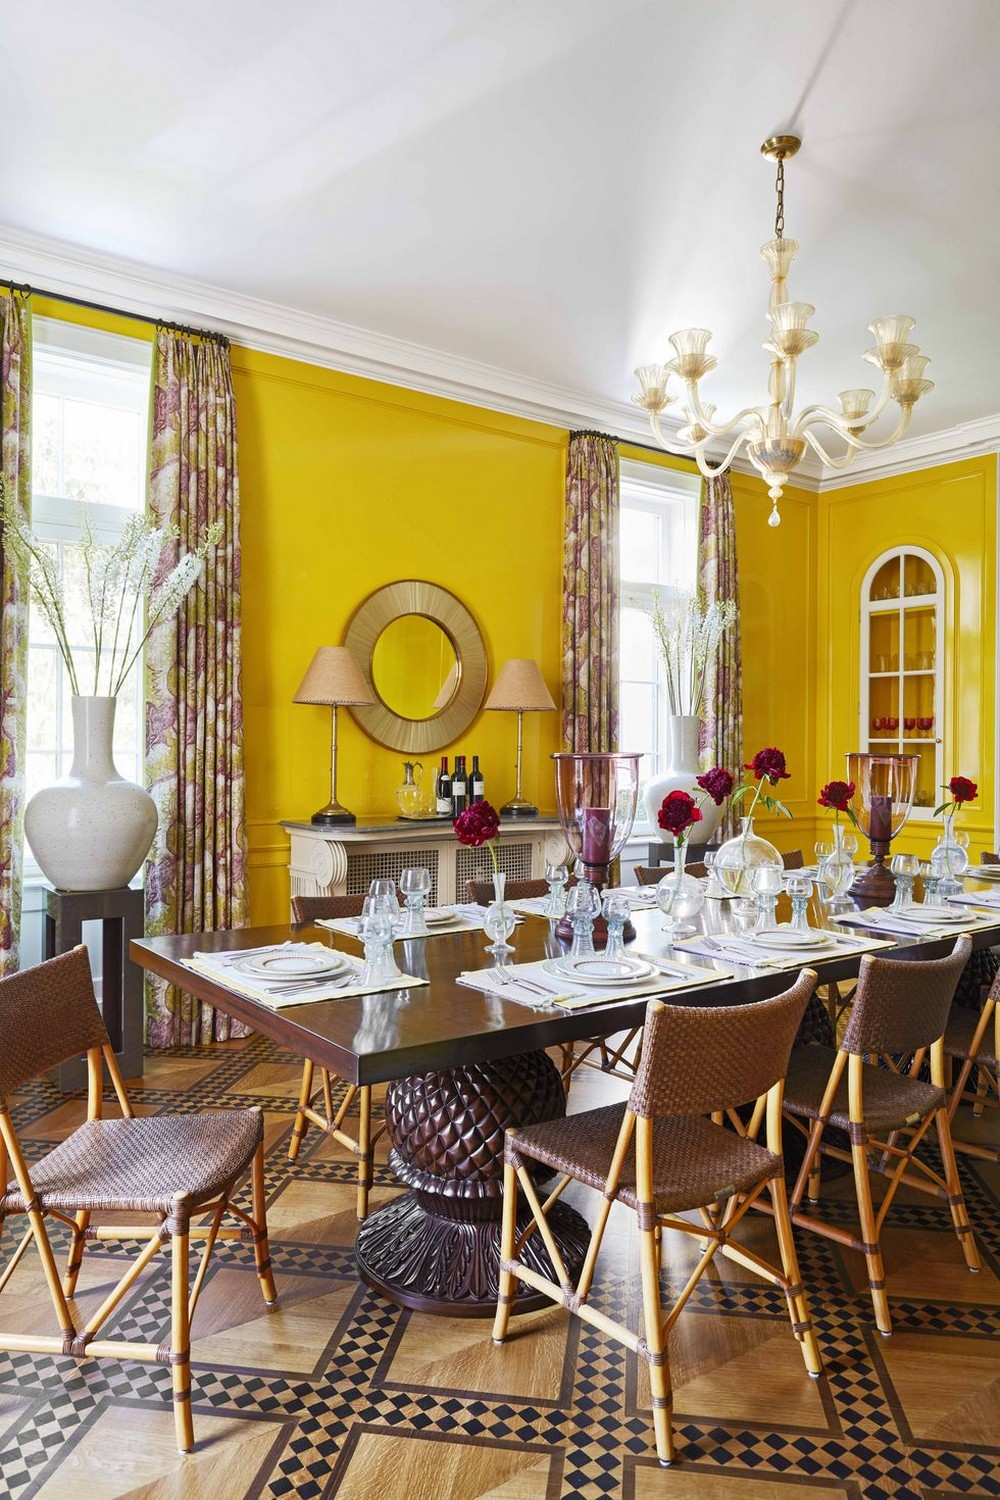 9 Designer Dining Room Ideas that Will Call for a Home Remodel 9 dining room ideas 9 Designer Dining Room Ideas that Will Call for a Home Renovation 9 Designer Dining Room Ideas that Will Call for a Home Remodel 9